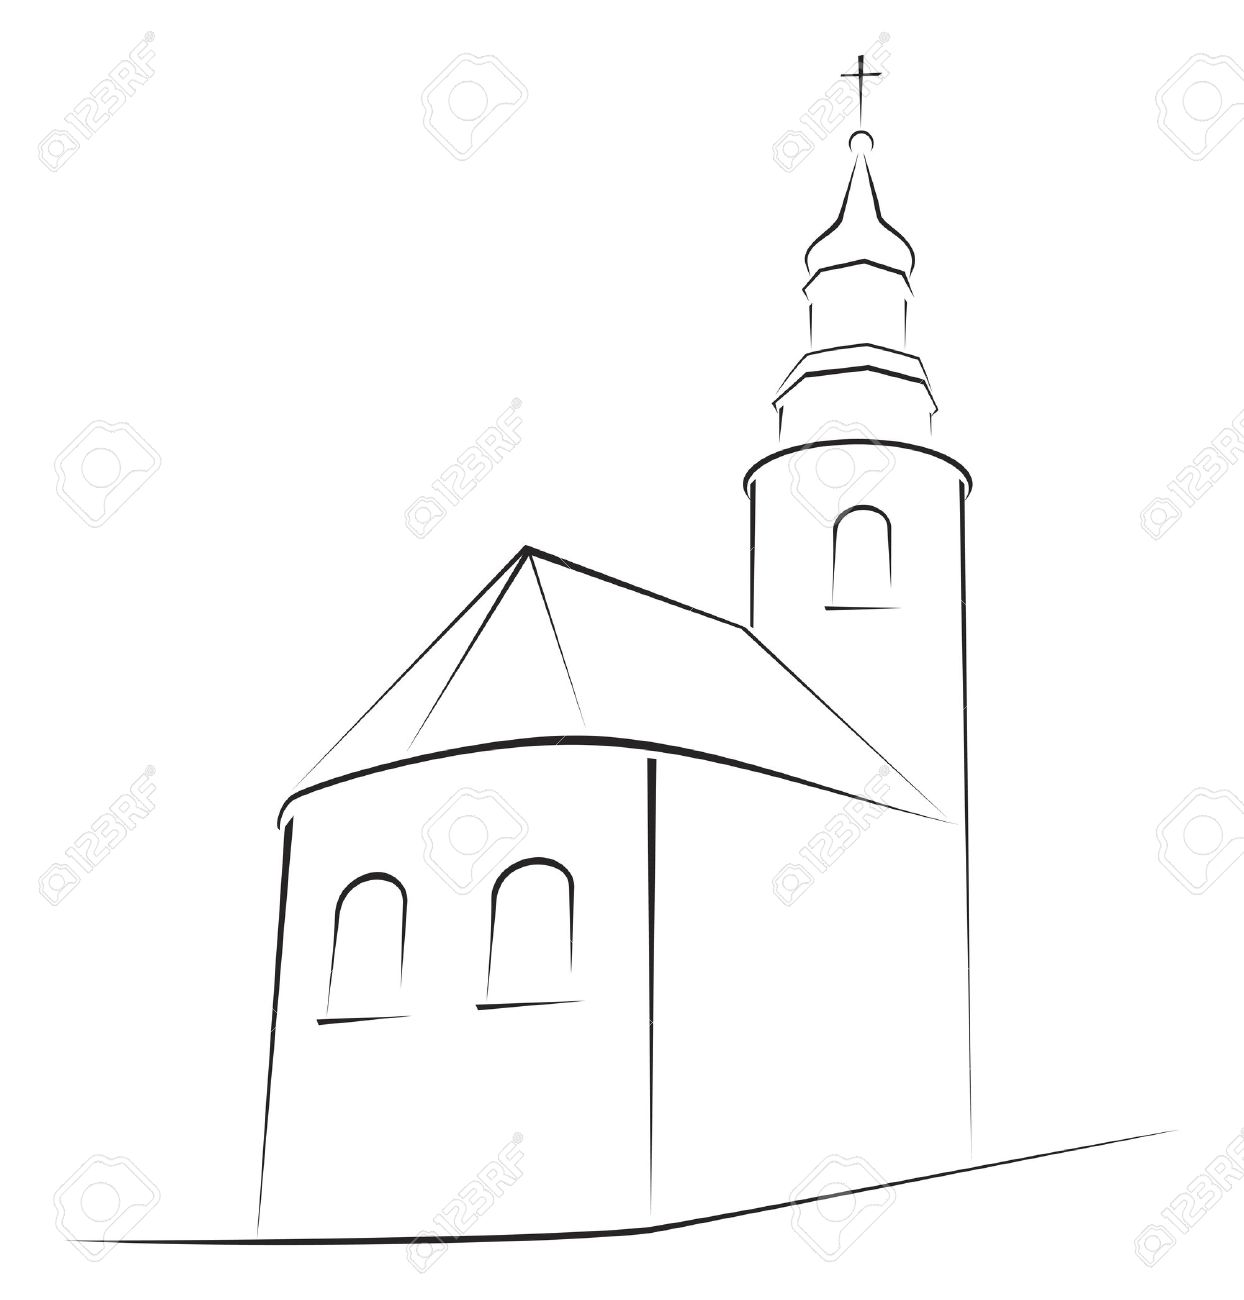 Structure of church on simple sketch Stock Vector - 10129401